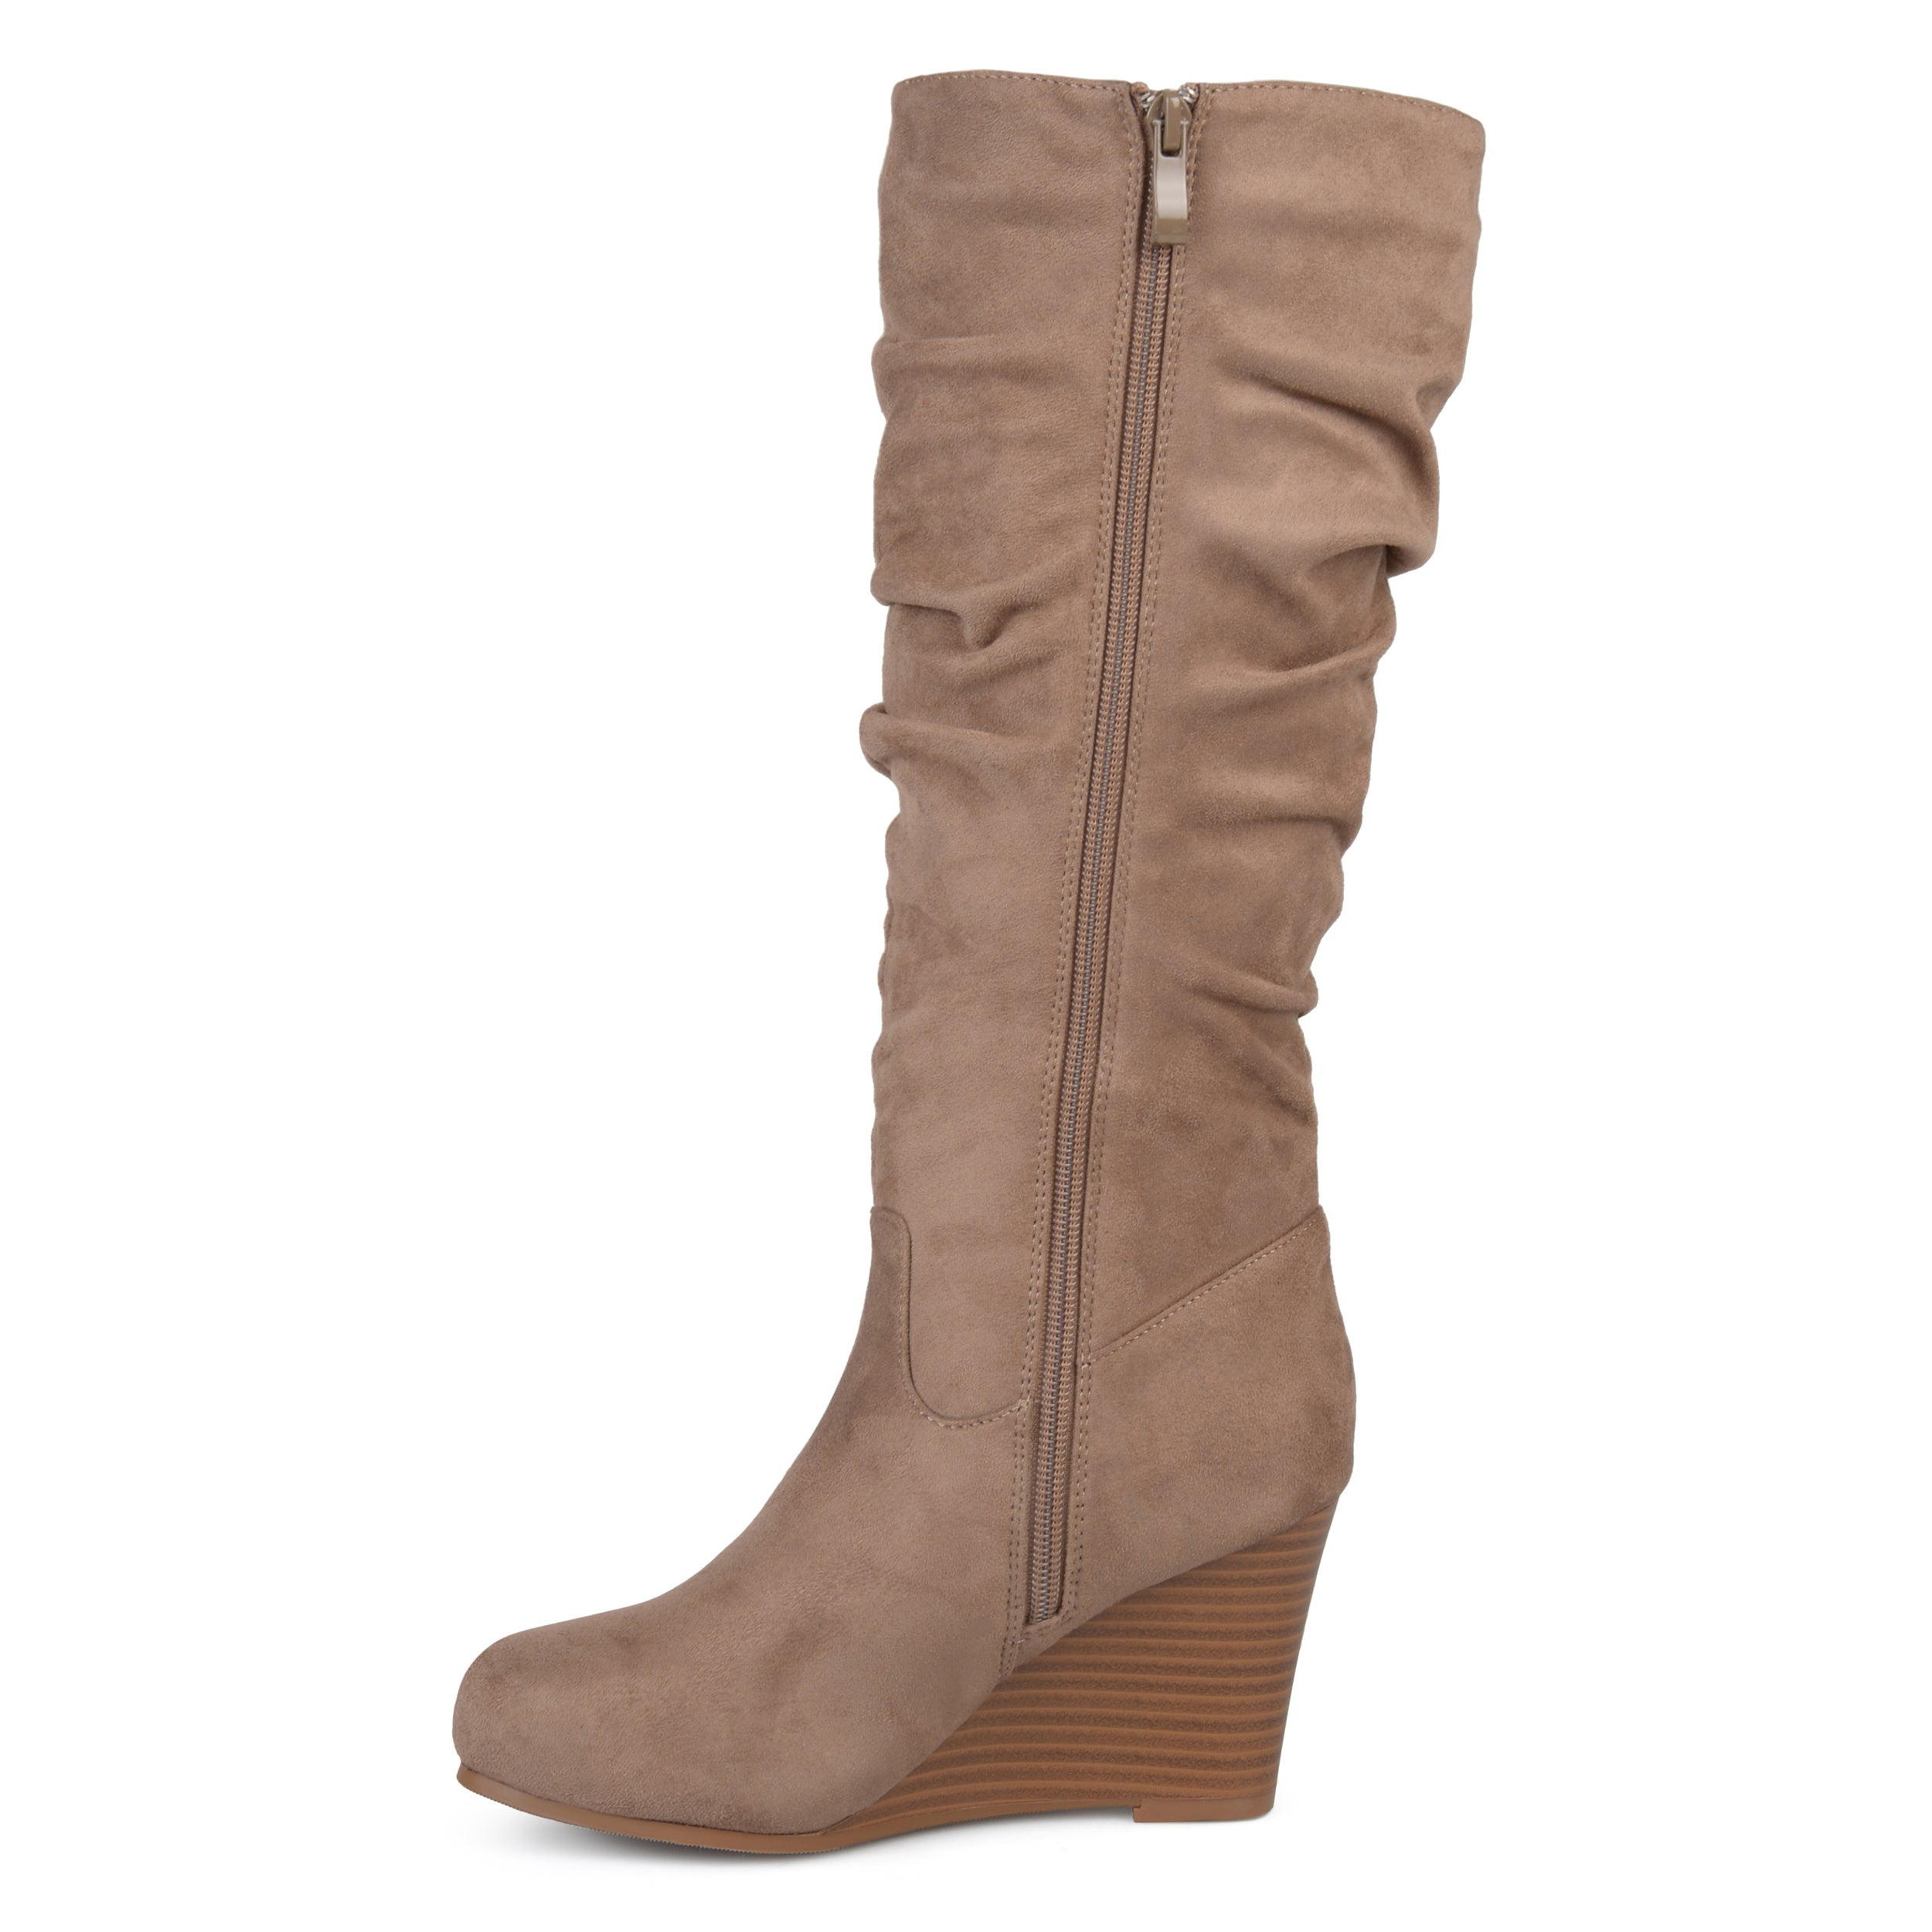 3bf863f1bfb Shop Journee Collection Women s  Haze  Regular and Wide Calf Slouchy Mid- calf Wedge Boots - On Sale - Free Shipping Today - Overstock - 17011776